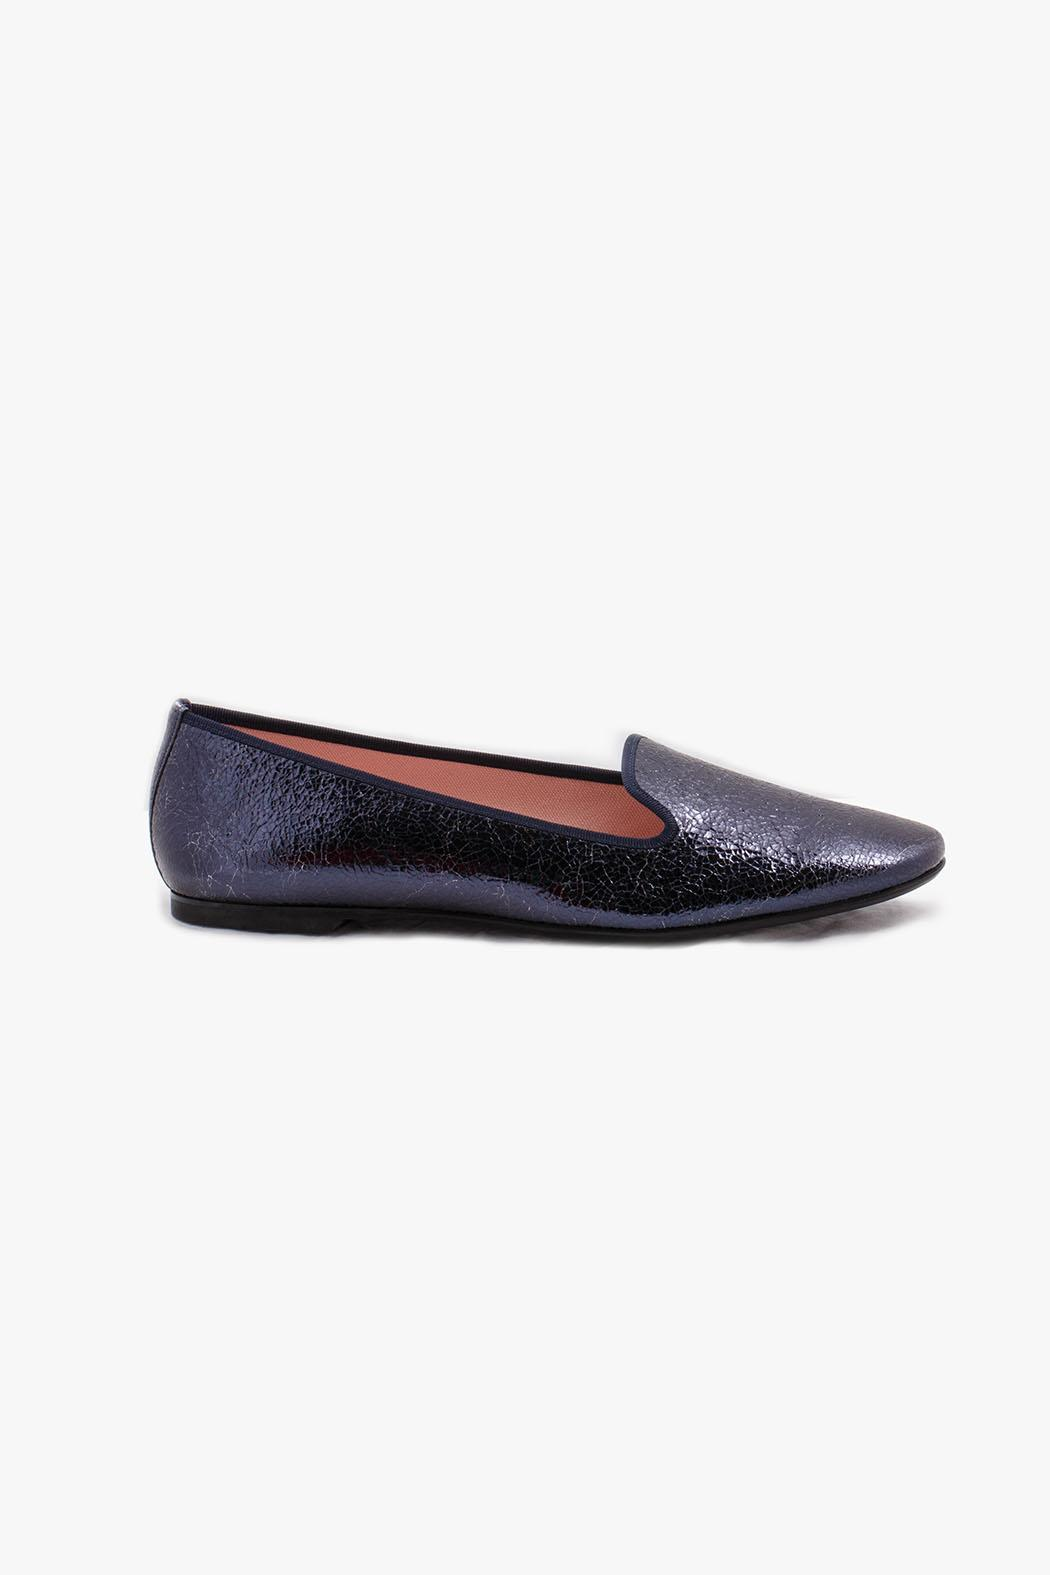 Pretty Ballerinas Navy Faye Loafers - Front Full Image